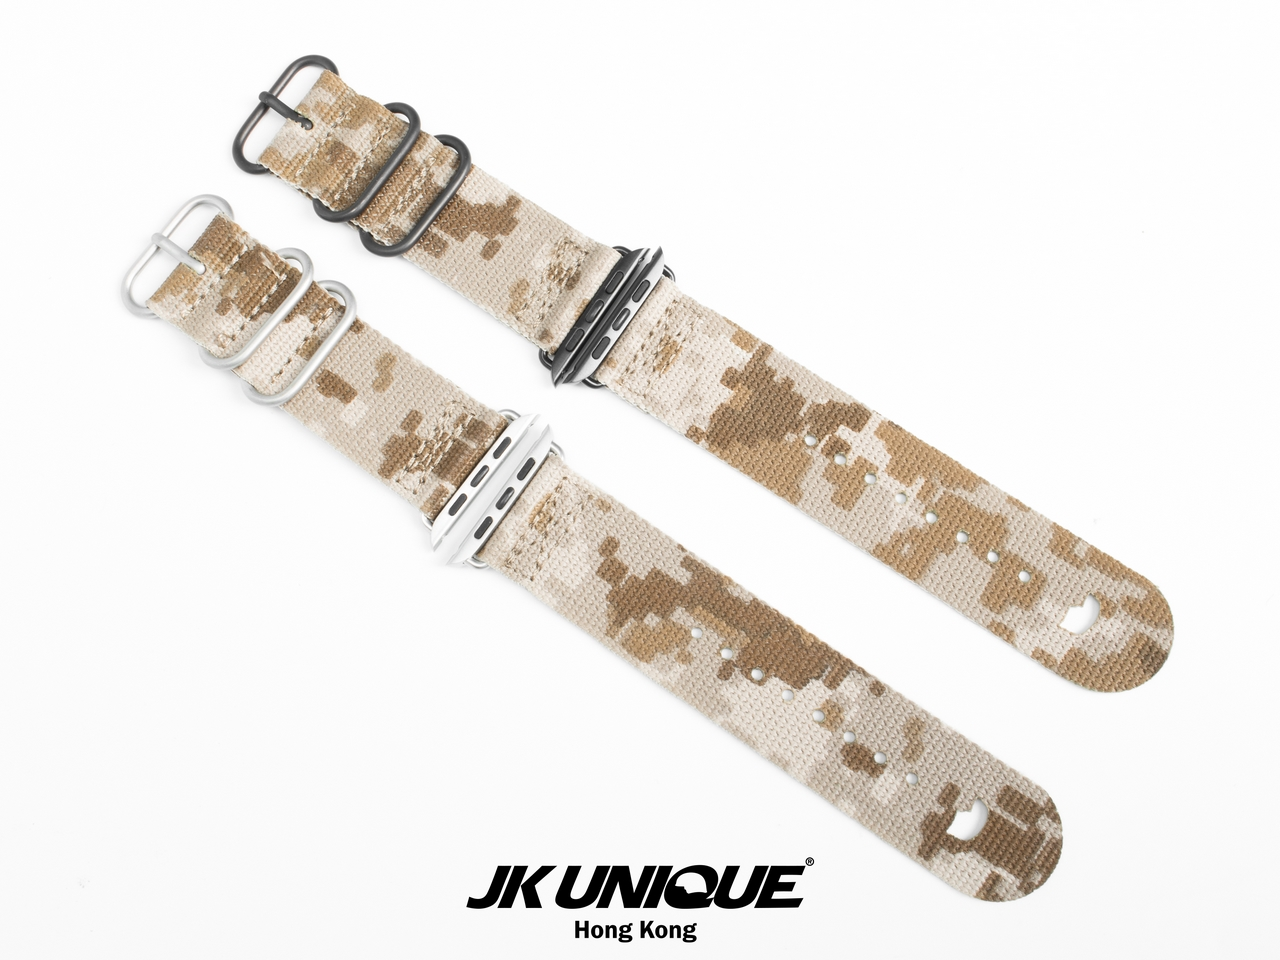 JK-UNIQUE-CAMO-NATO-Apple-Watch-Strap-42mm-Multicam-AOR1-1-A (1280).jpg